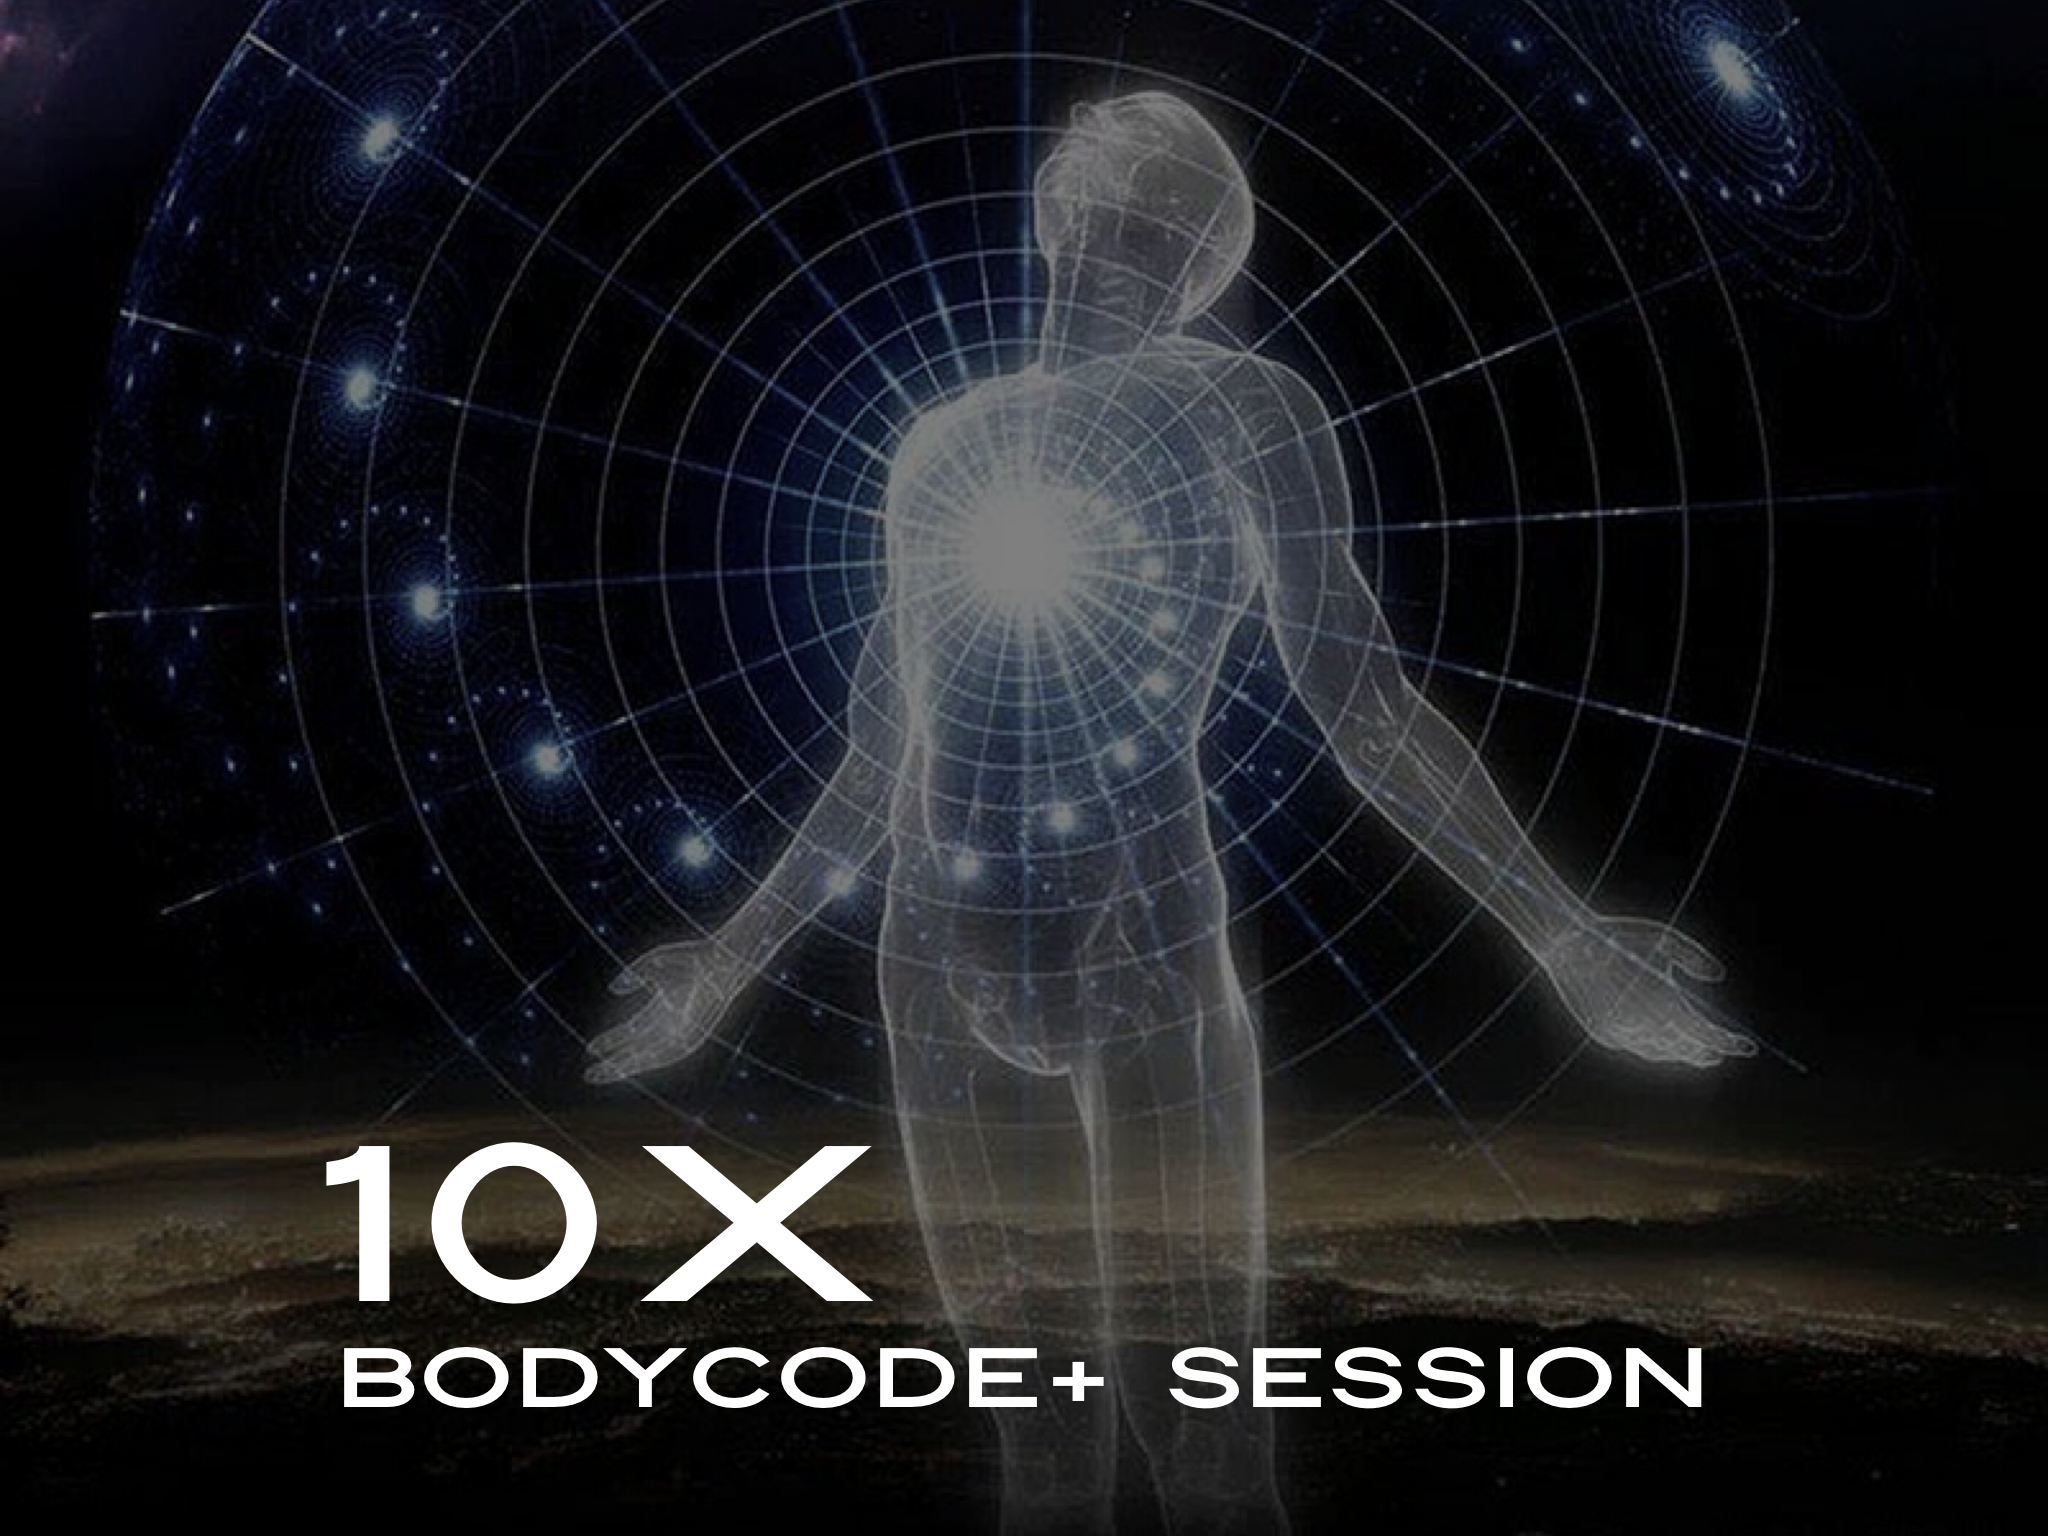 10x Bodycode+ Session